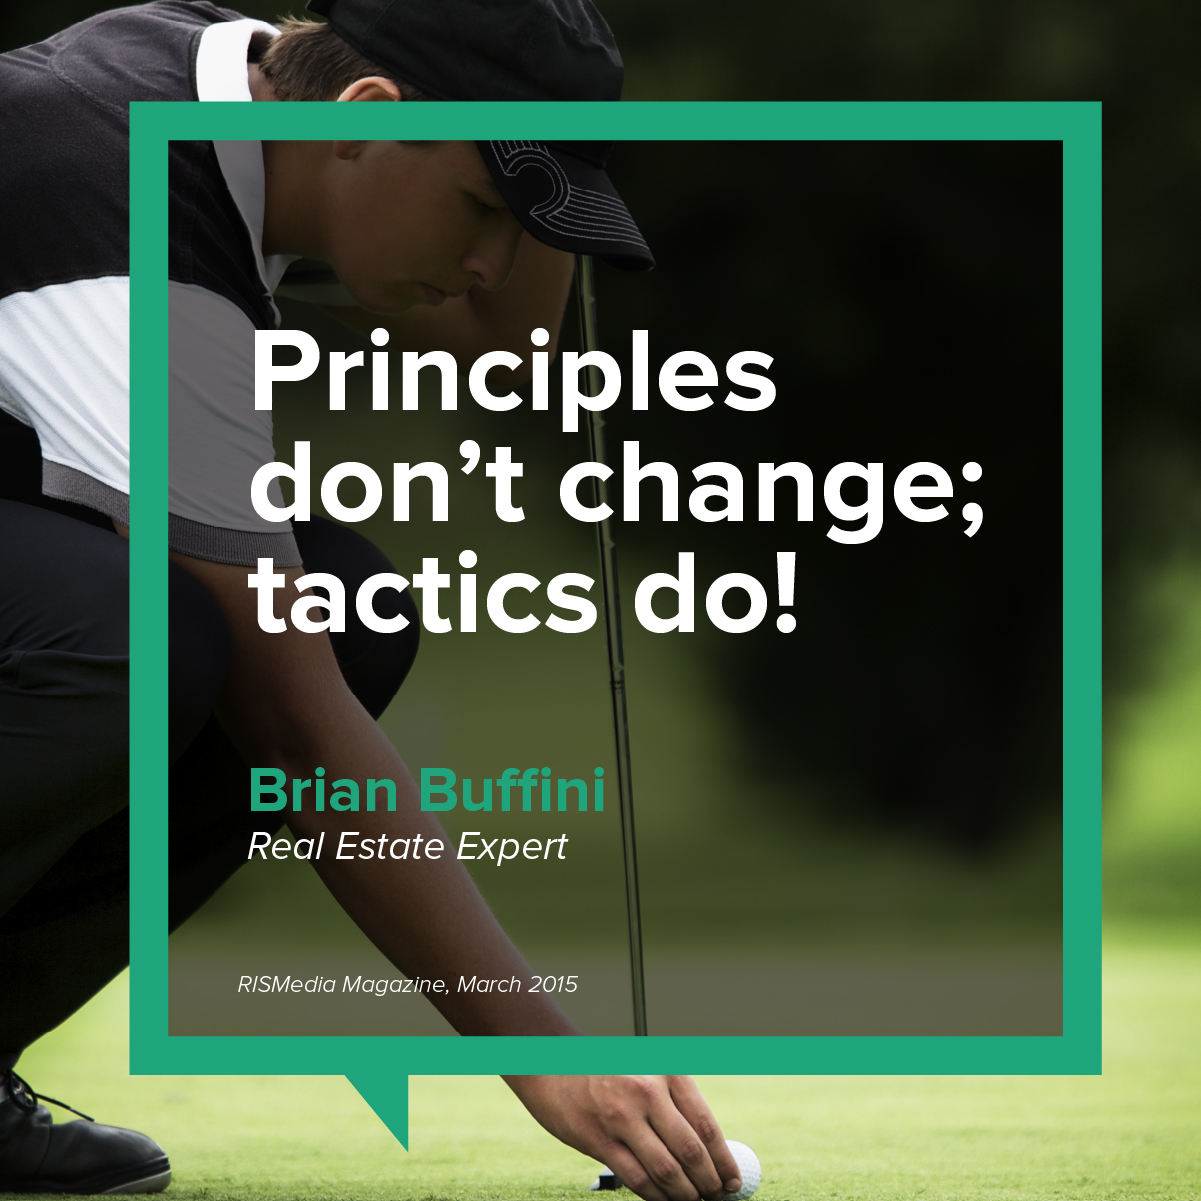 quote-from-brian-buffini-principles-dont-change-tactics-do